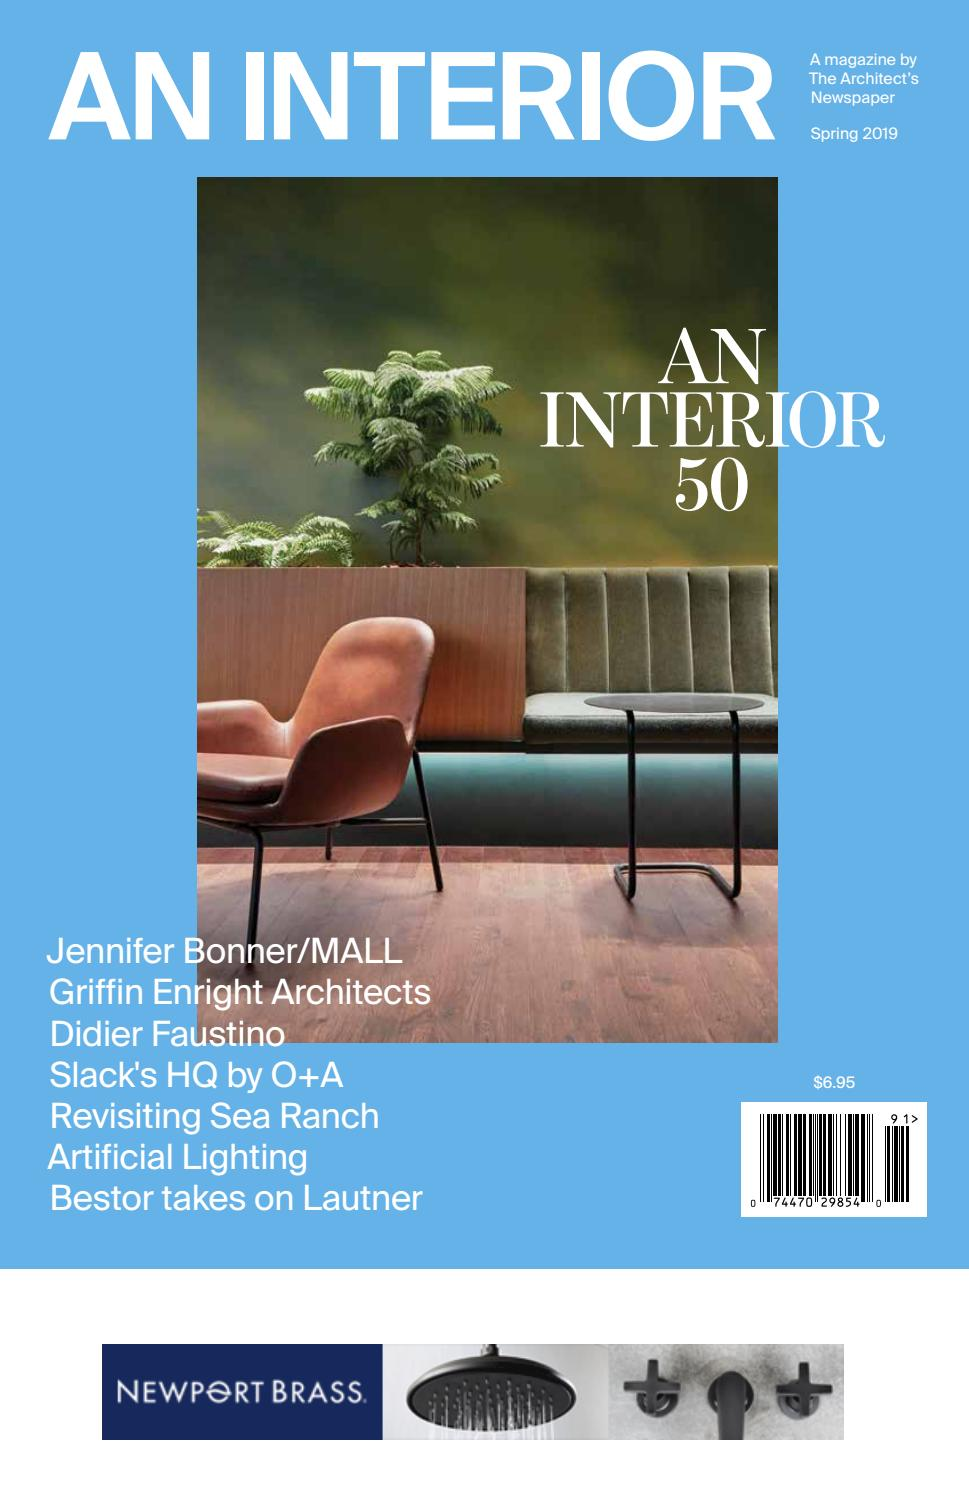 March 2019: An Interior by The Architect's Newspaper - issuu